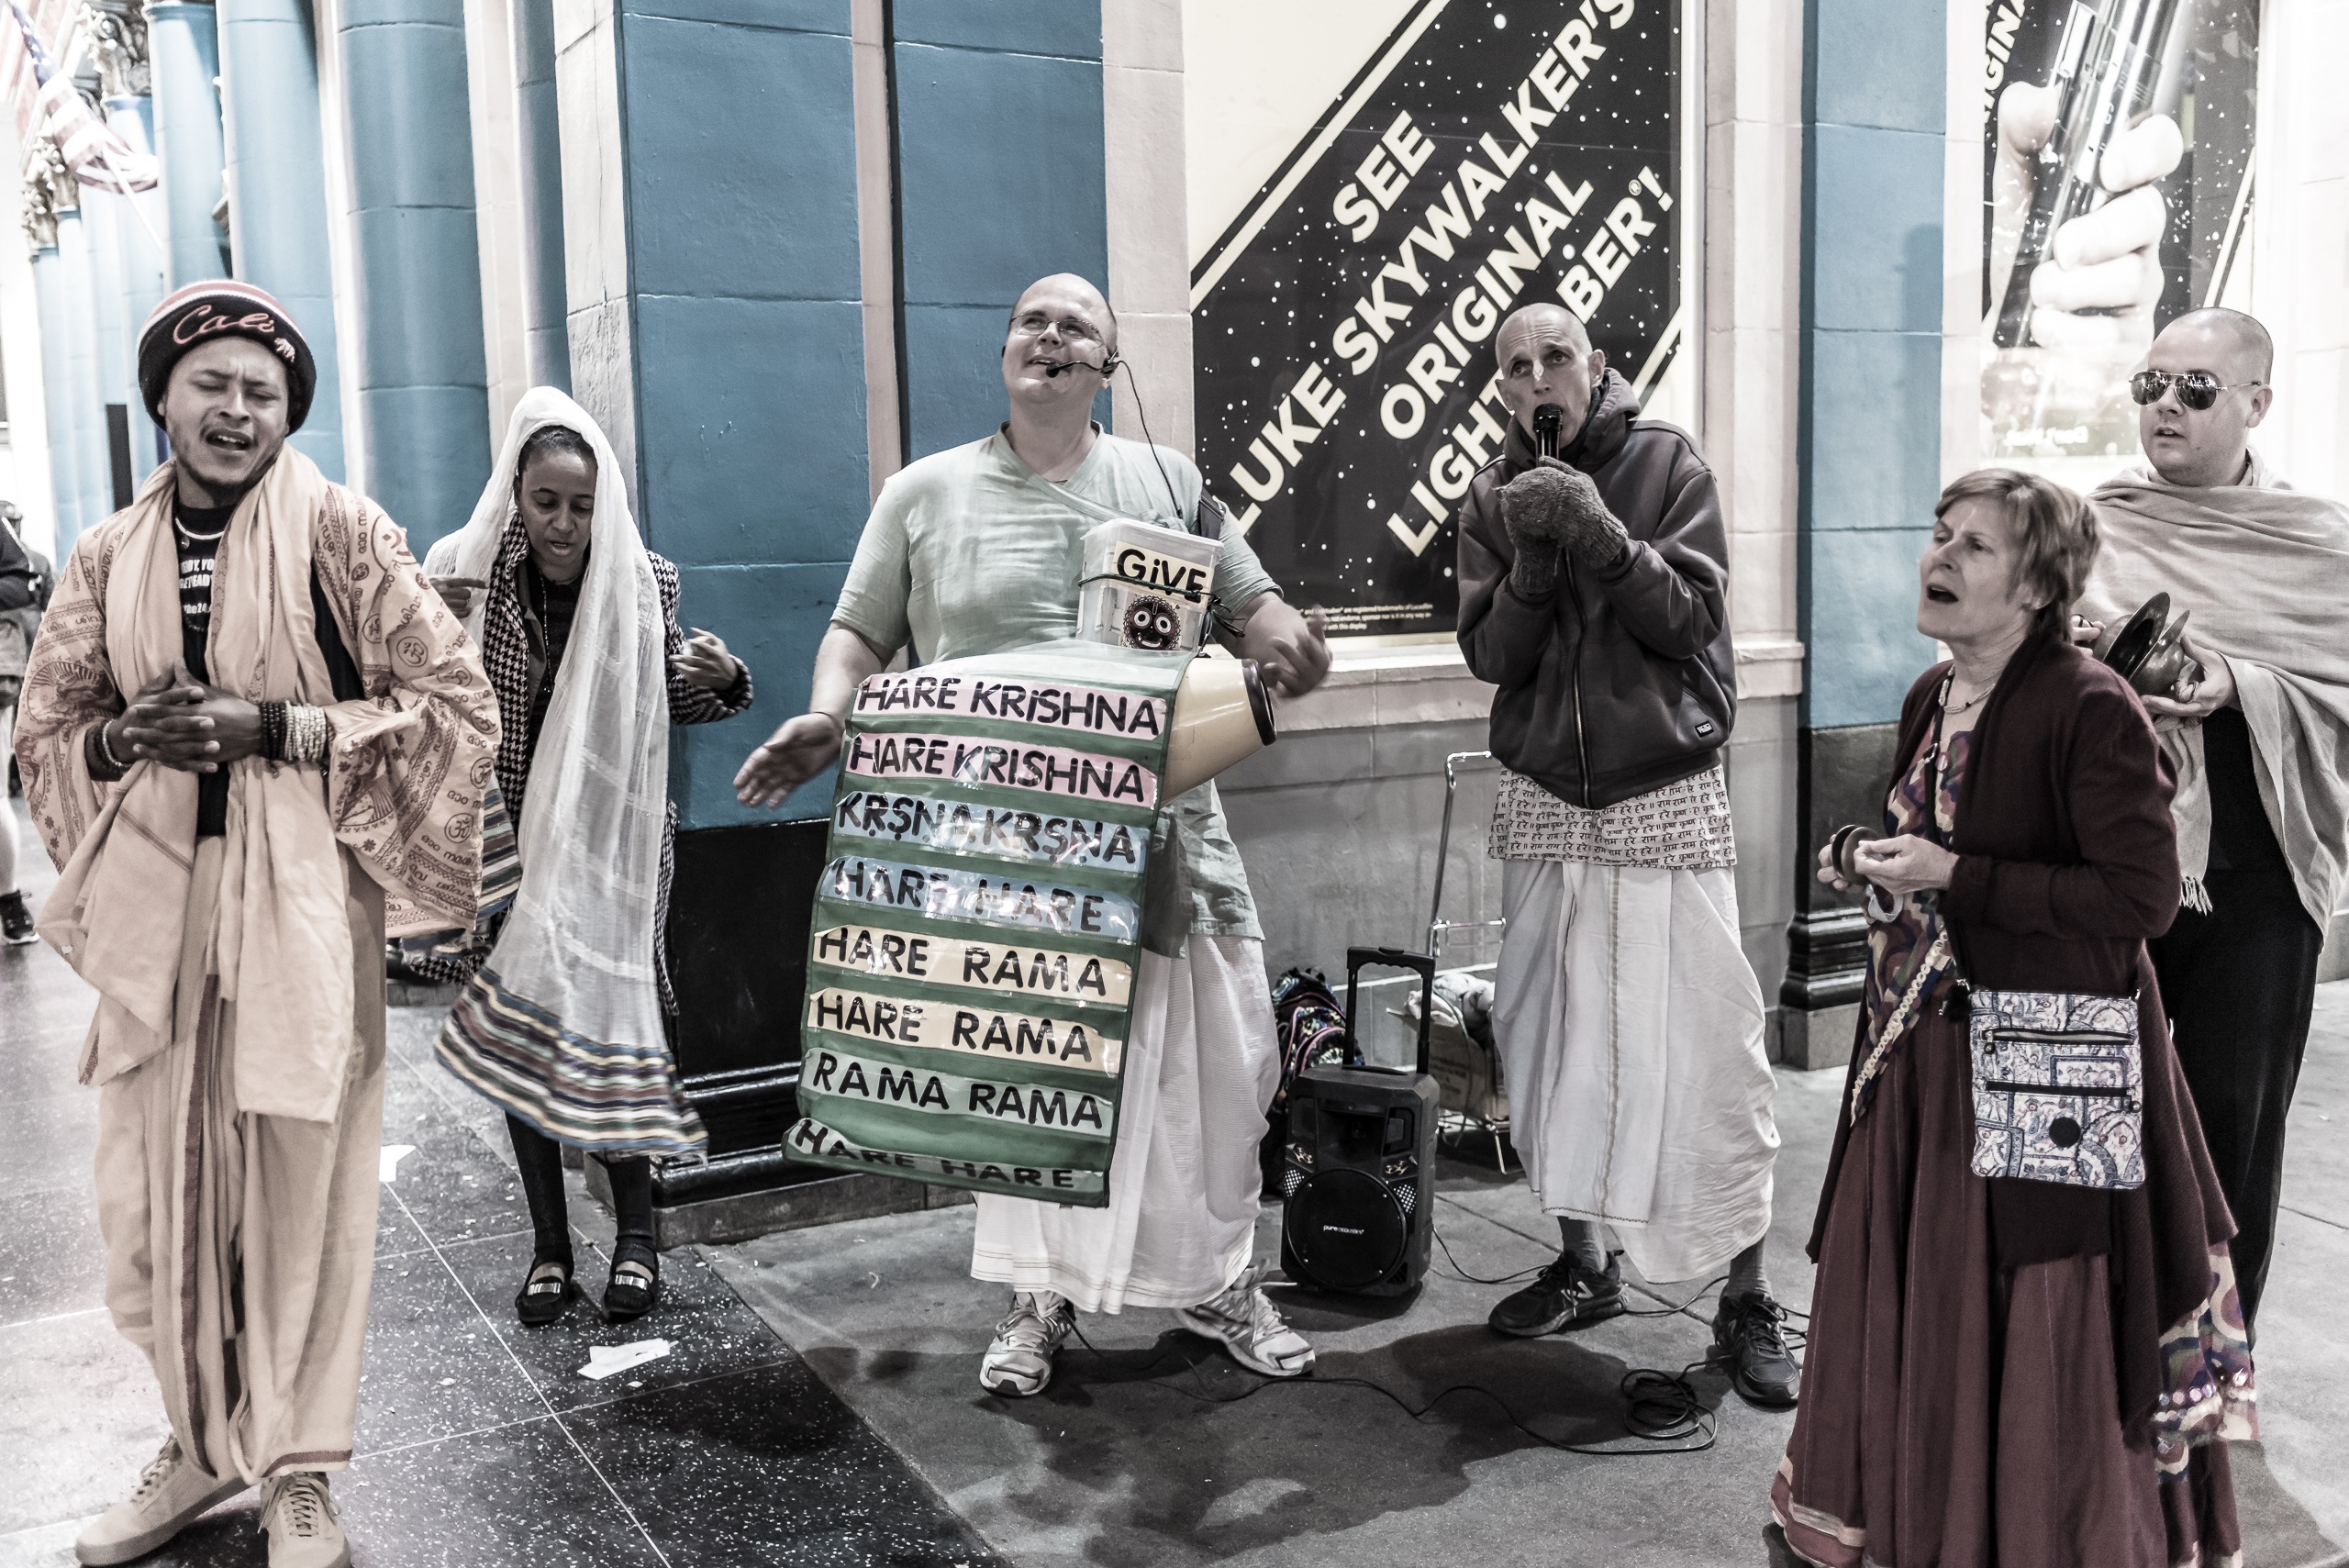 """a group of """"Hare Krishna's"""" chanting on a street corner on Hollywood Blvd in front of a sign about Luke Skywalker's Lightsaber"""